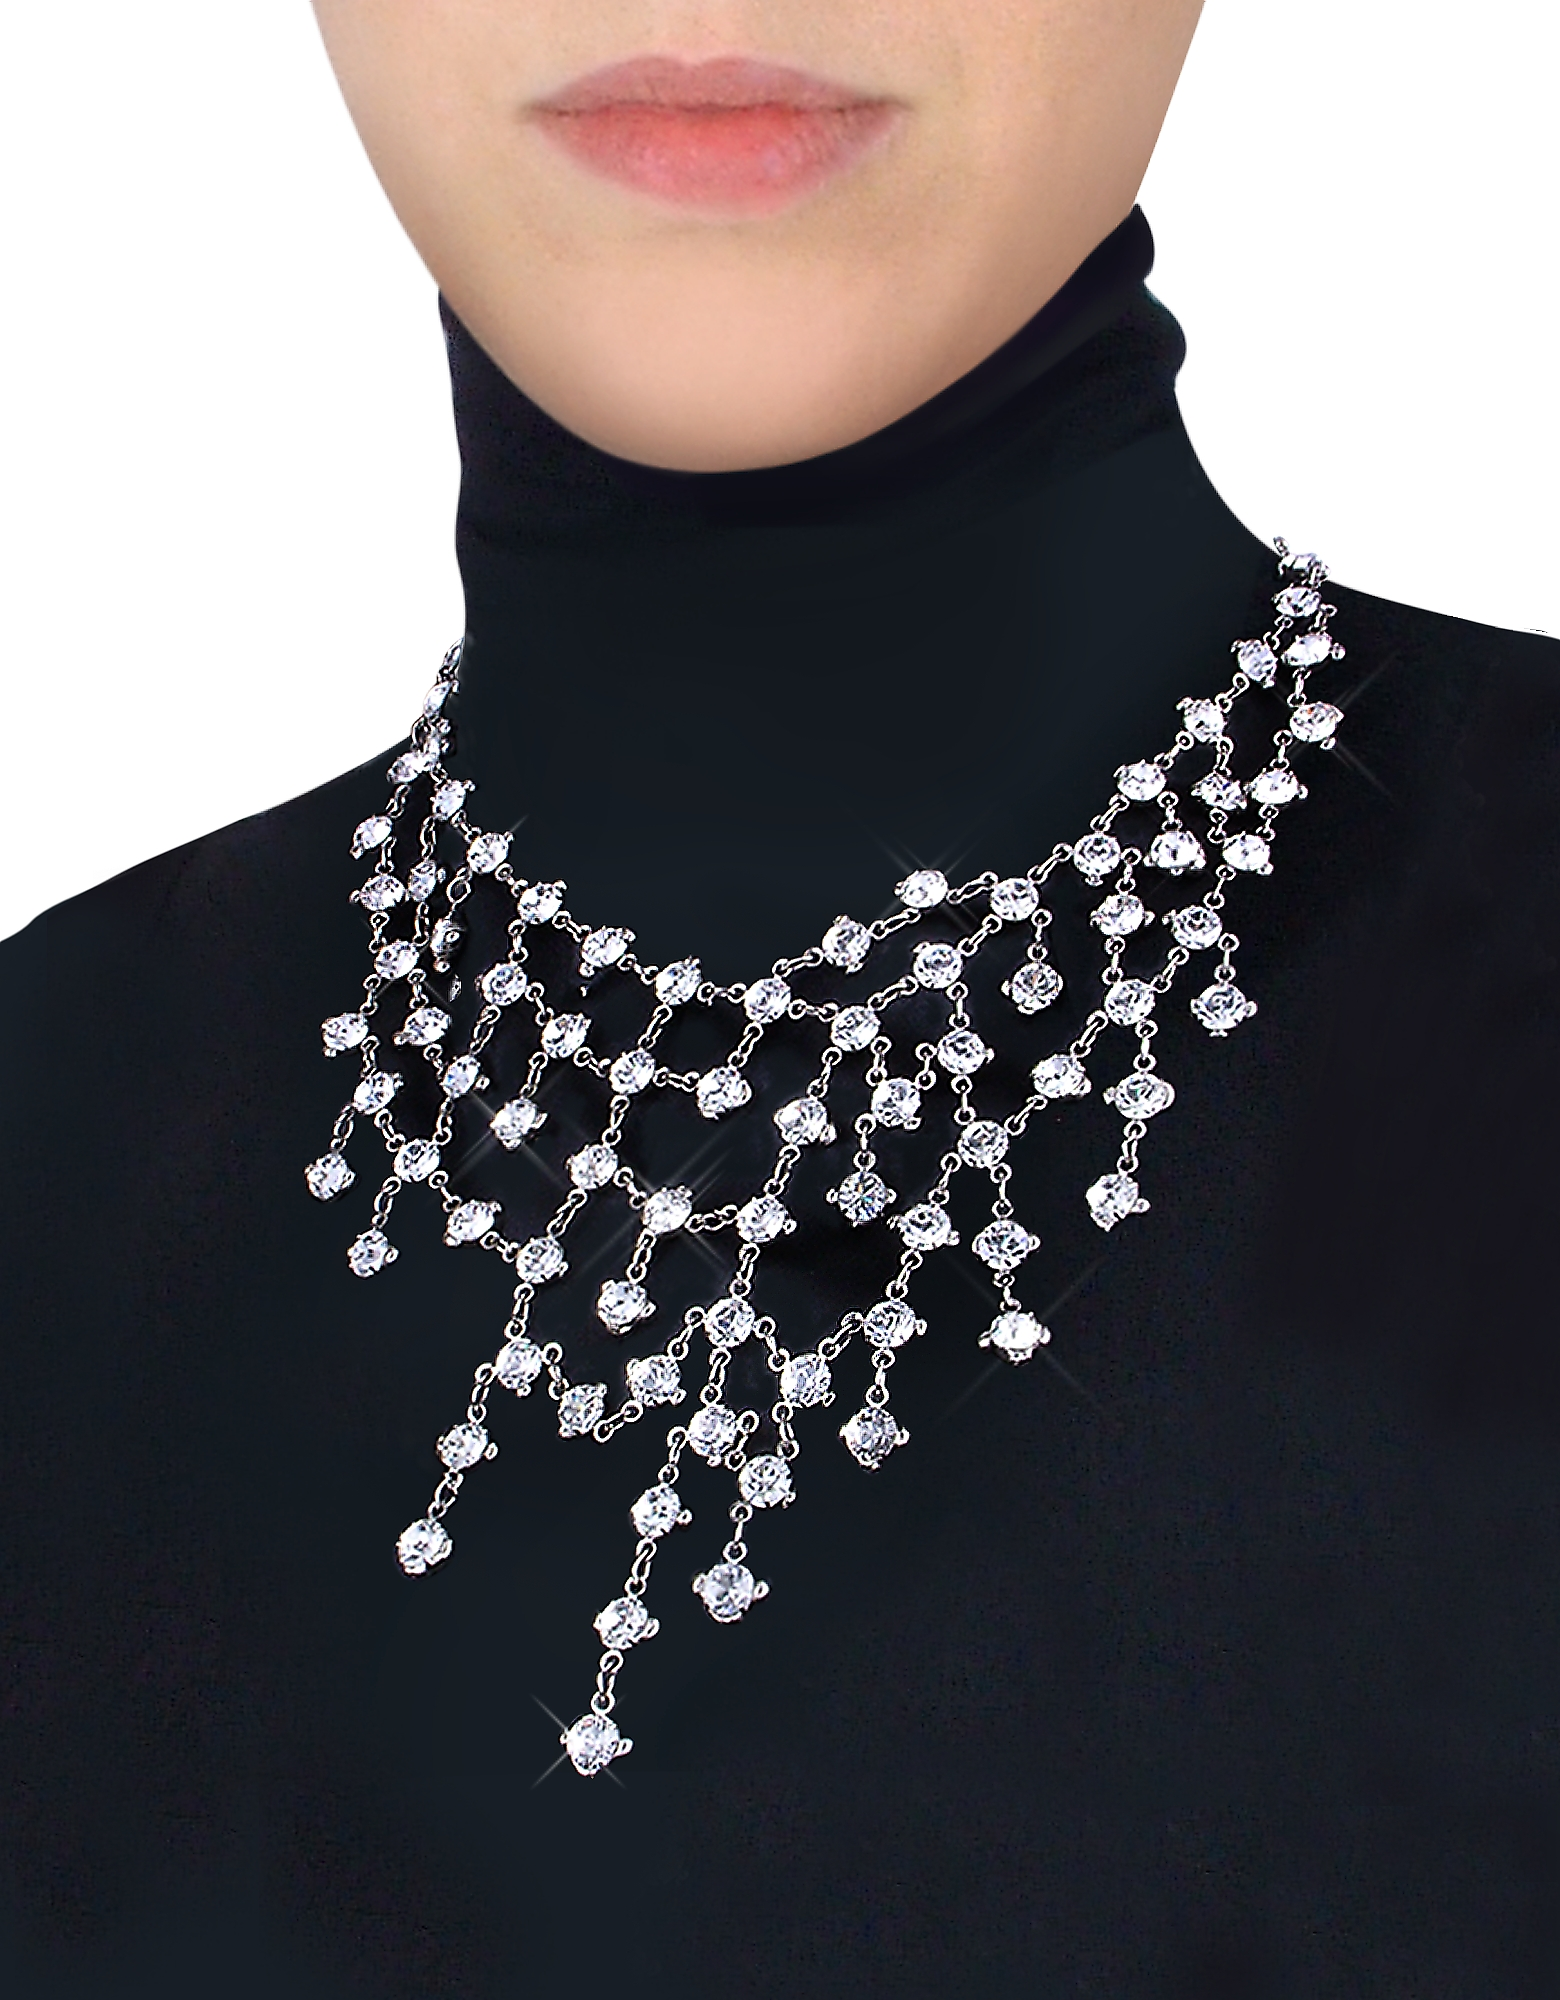 Evatini Necklaces, Crystal Web Necklace